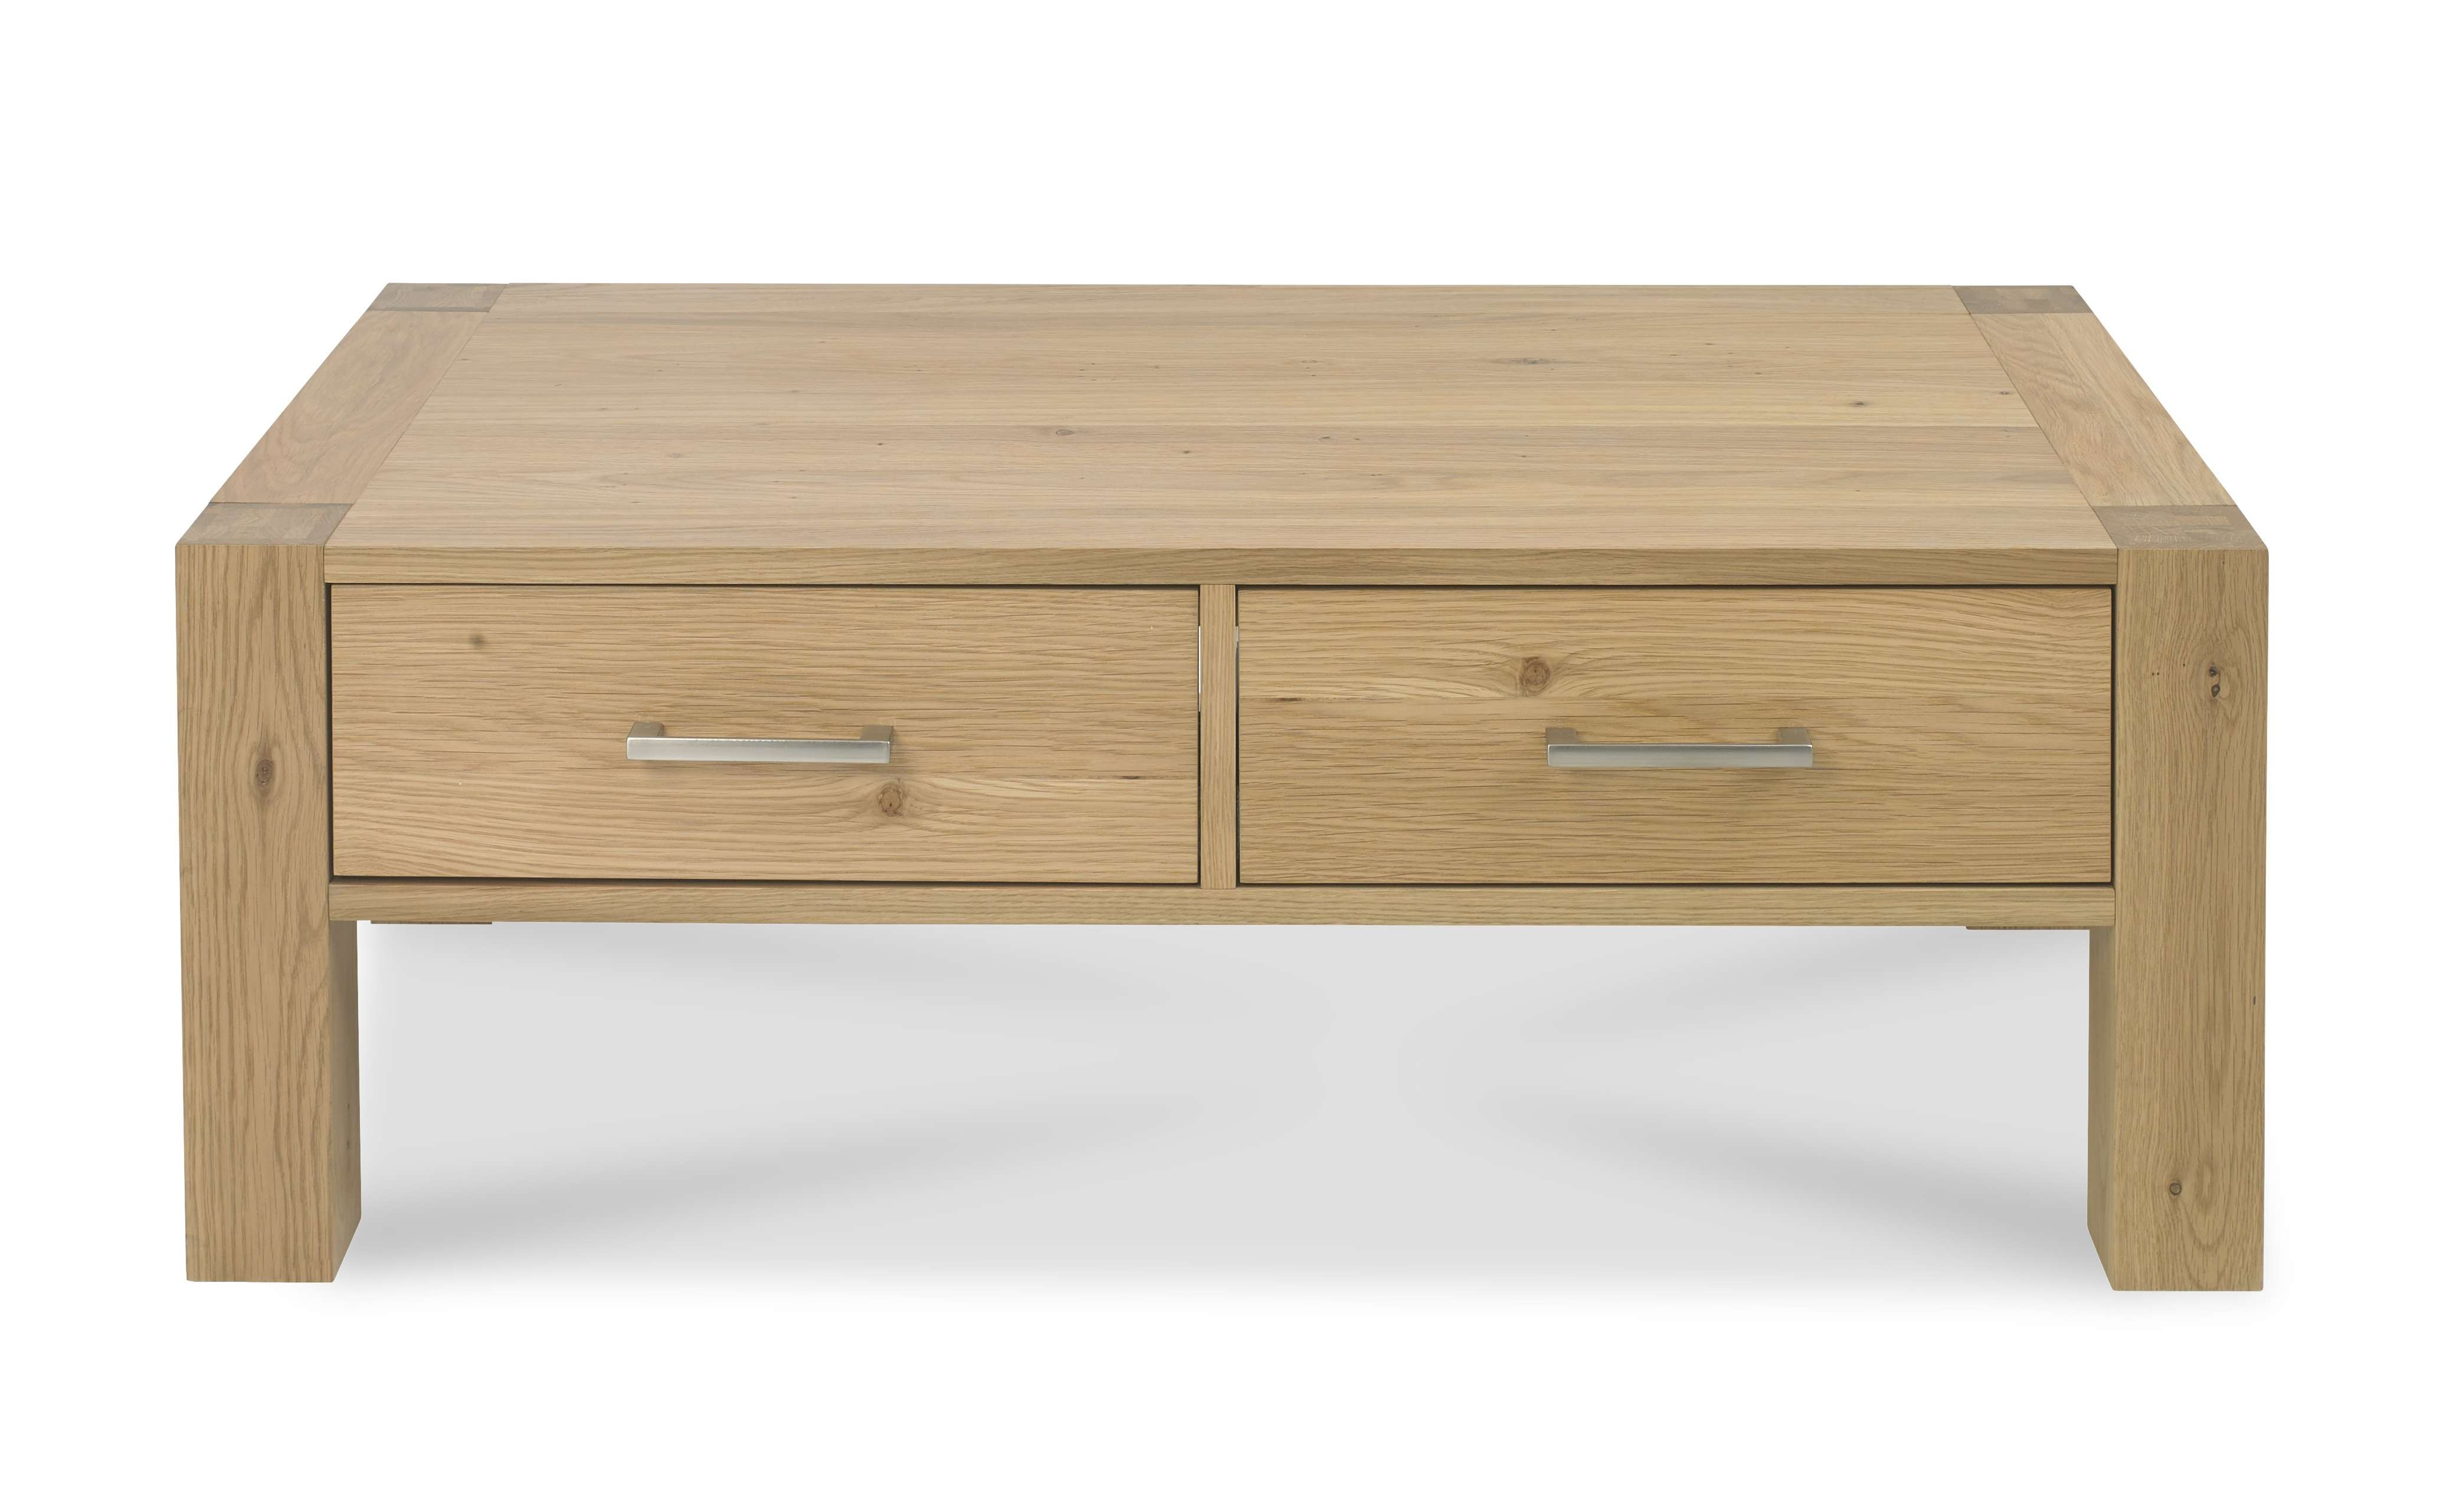 Bentley Designs Turin Light Oak Coffee Table With Drawers – Style With Fashionable Light Oak Coffee Tables With Drawers (View 1 of 20)